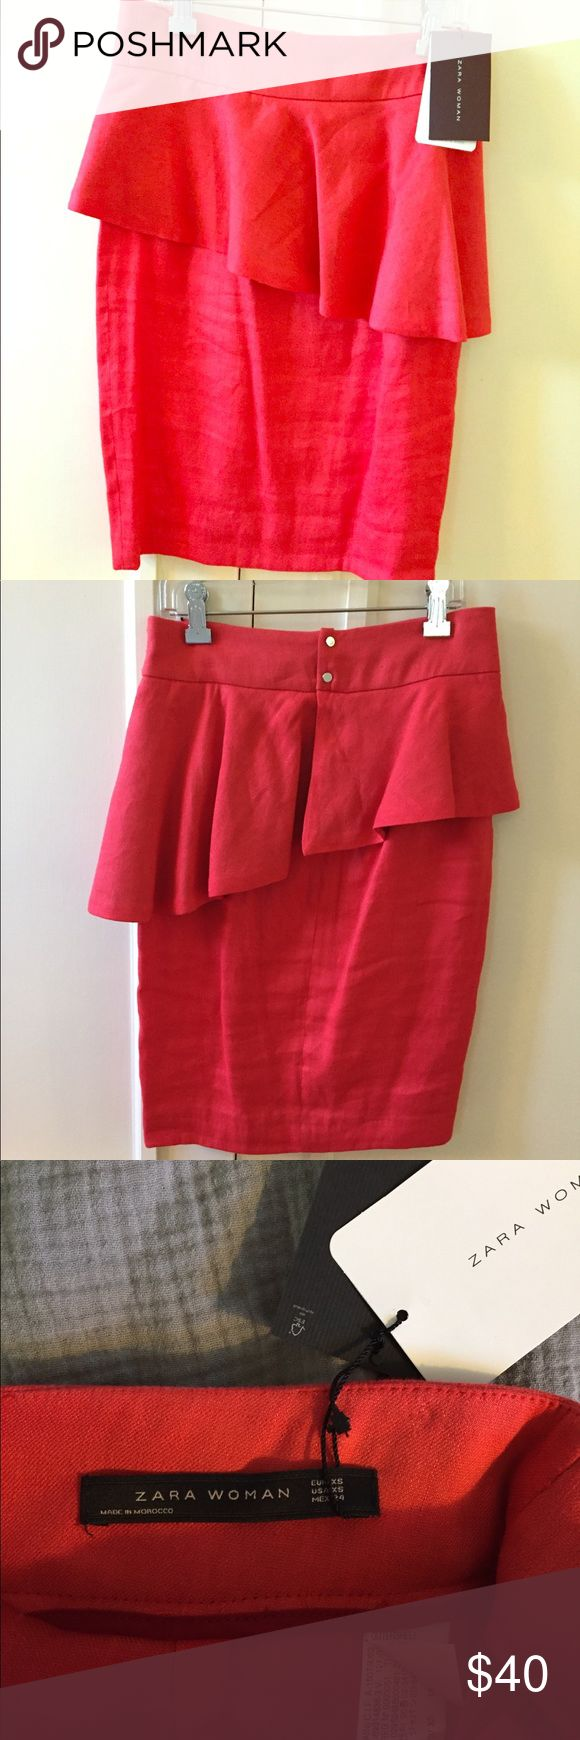 """Zara red ruffle skirt-new with tag Red linen skirt, about 21"""" length Zara Skirts Midi"""